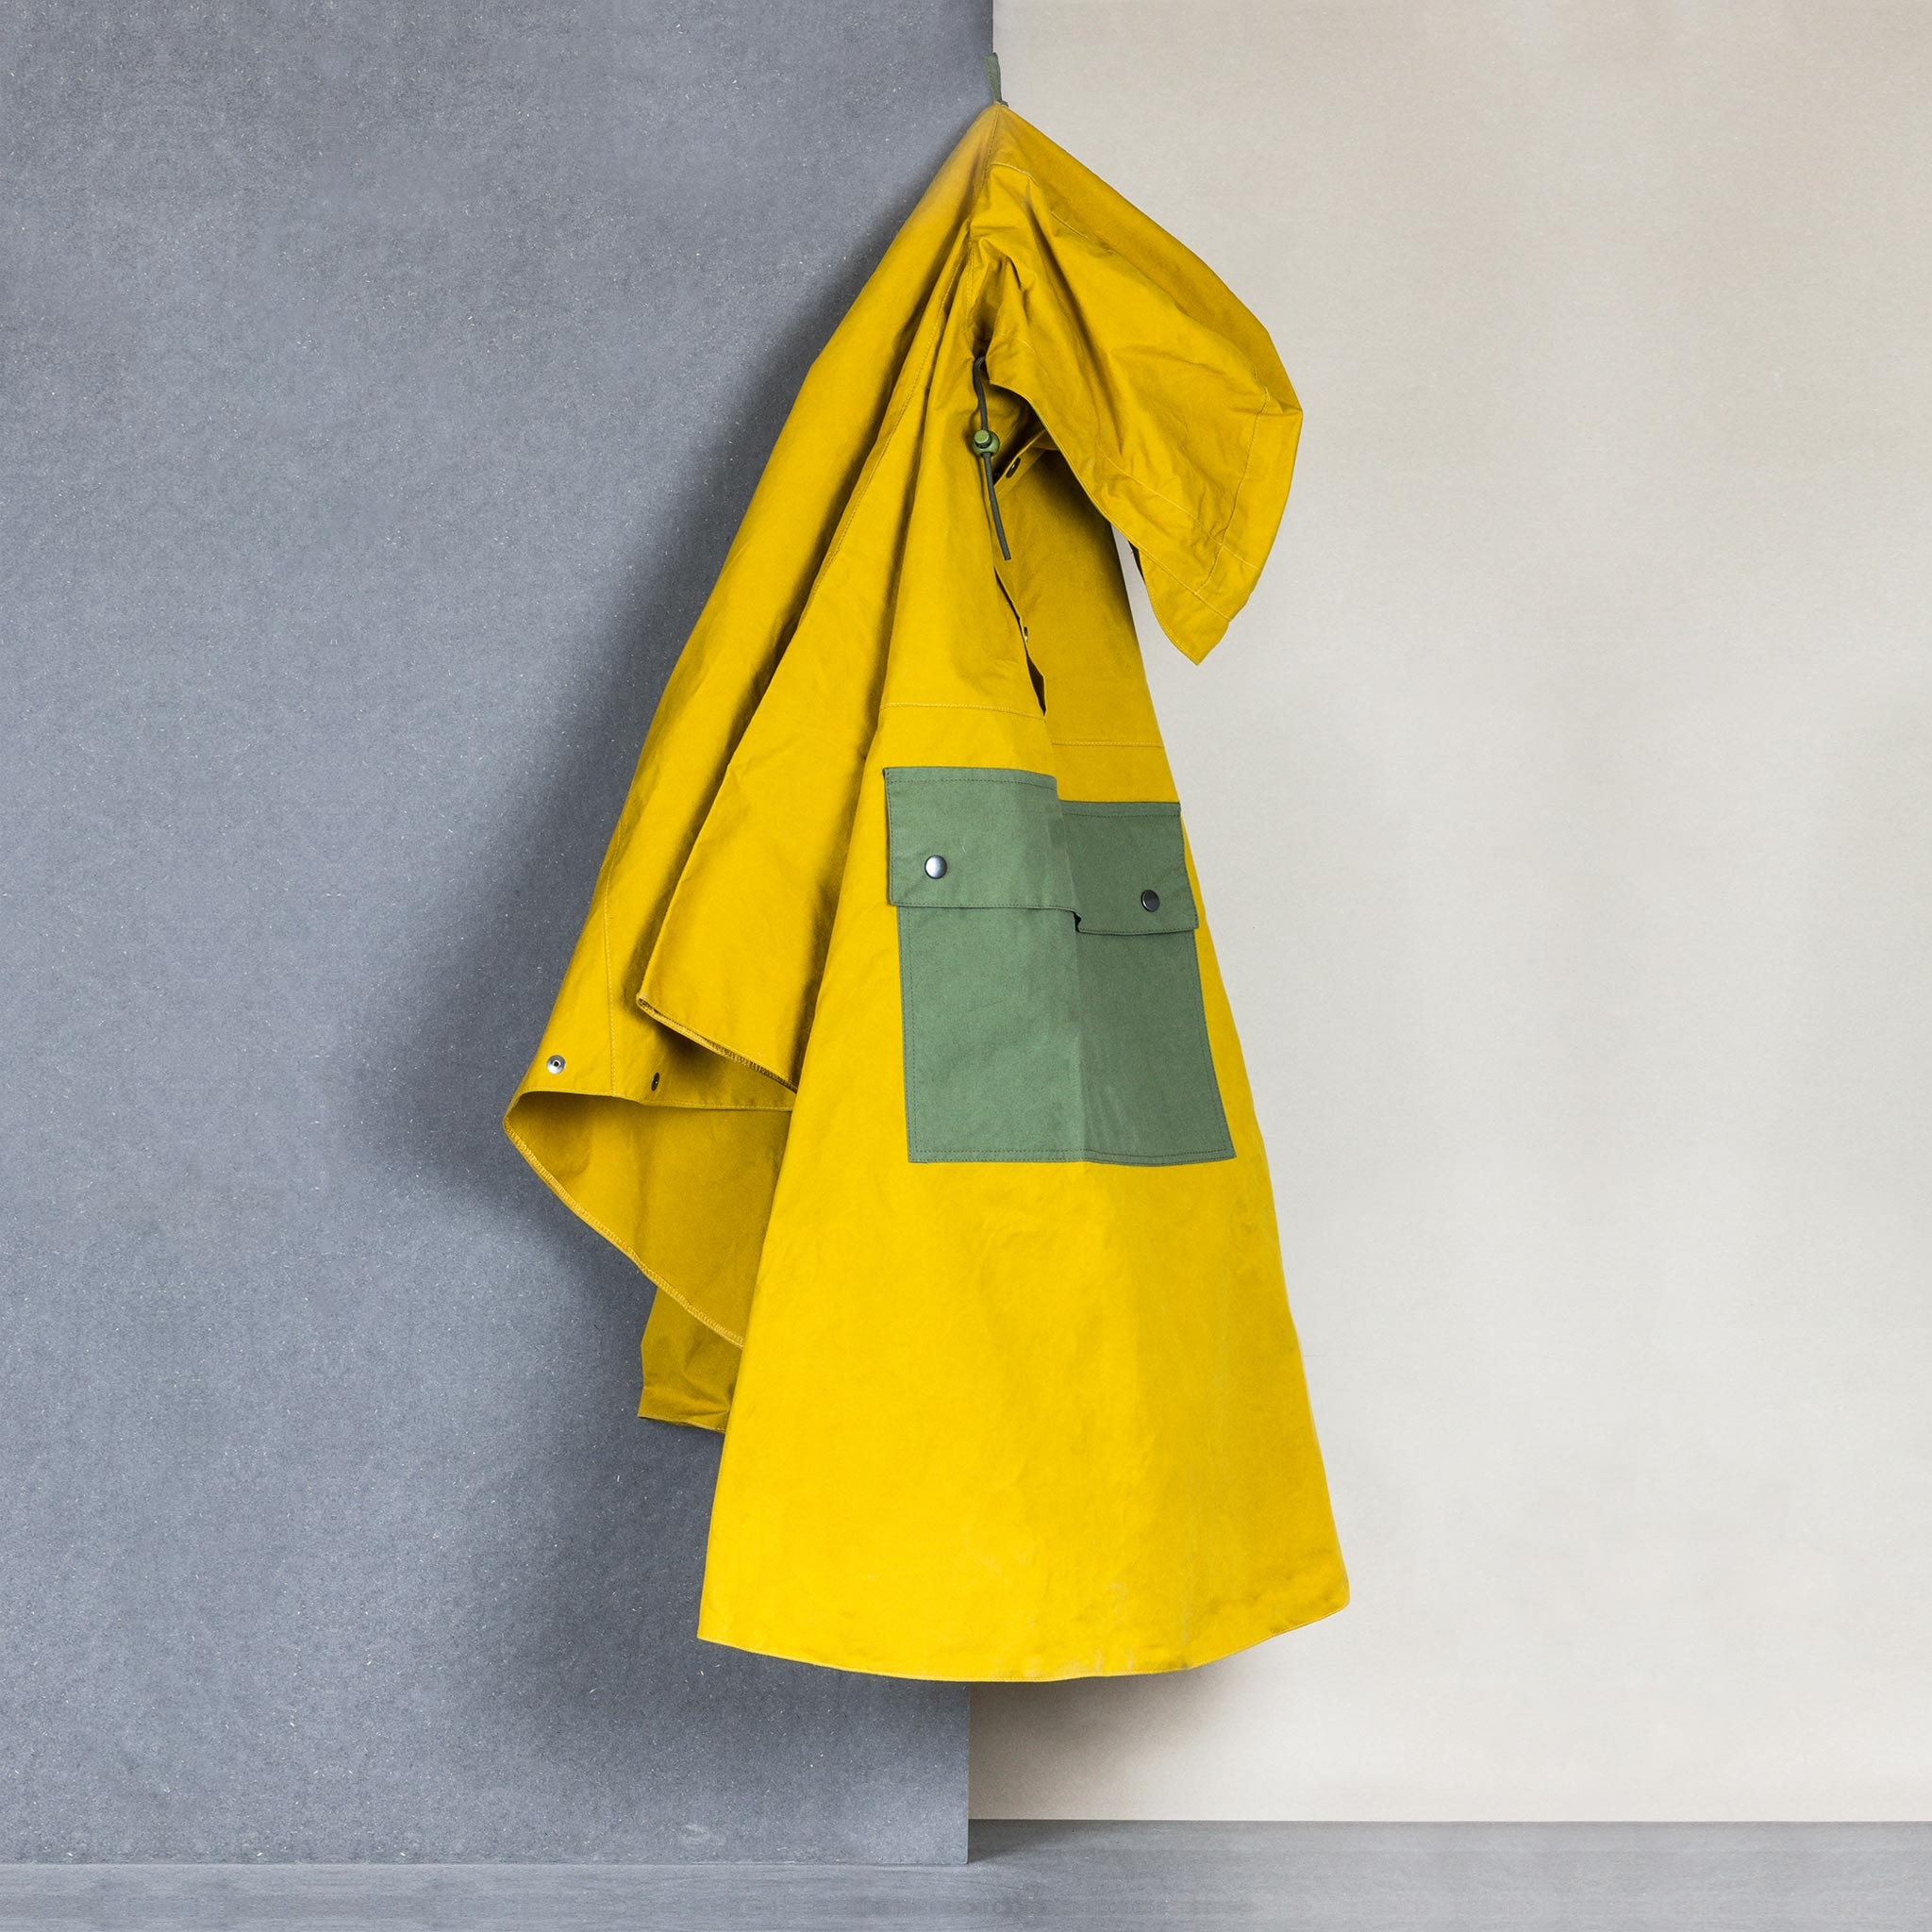 Calton Hill Edinburgh Scotland Collective Matter x Panel Rain Poncho Unisex Katie Schwab with Halley Stevensons and Greenhills Clothing Mary Quant Cumin Racing Green Waxed Cotton